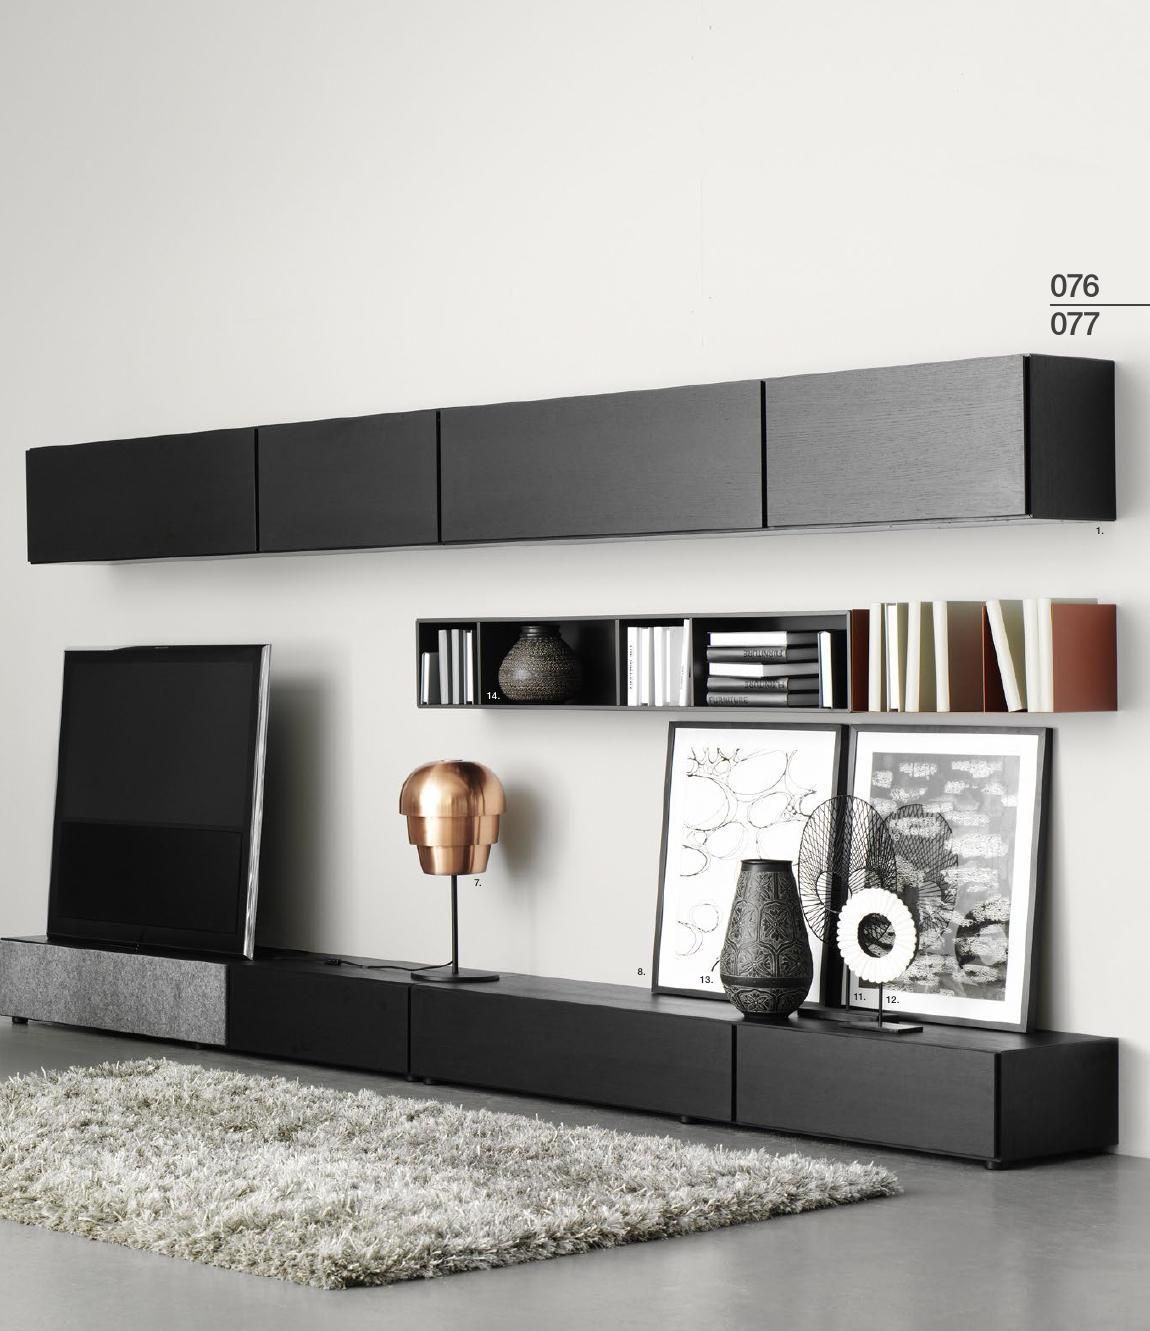 boconcept 2015 etagere rangement rangement mural et bibliotheque etagere. Black Bedroom Furniture Sets. Home Design Ideas